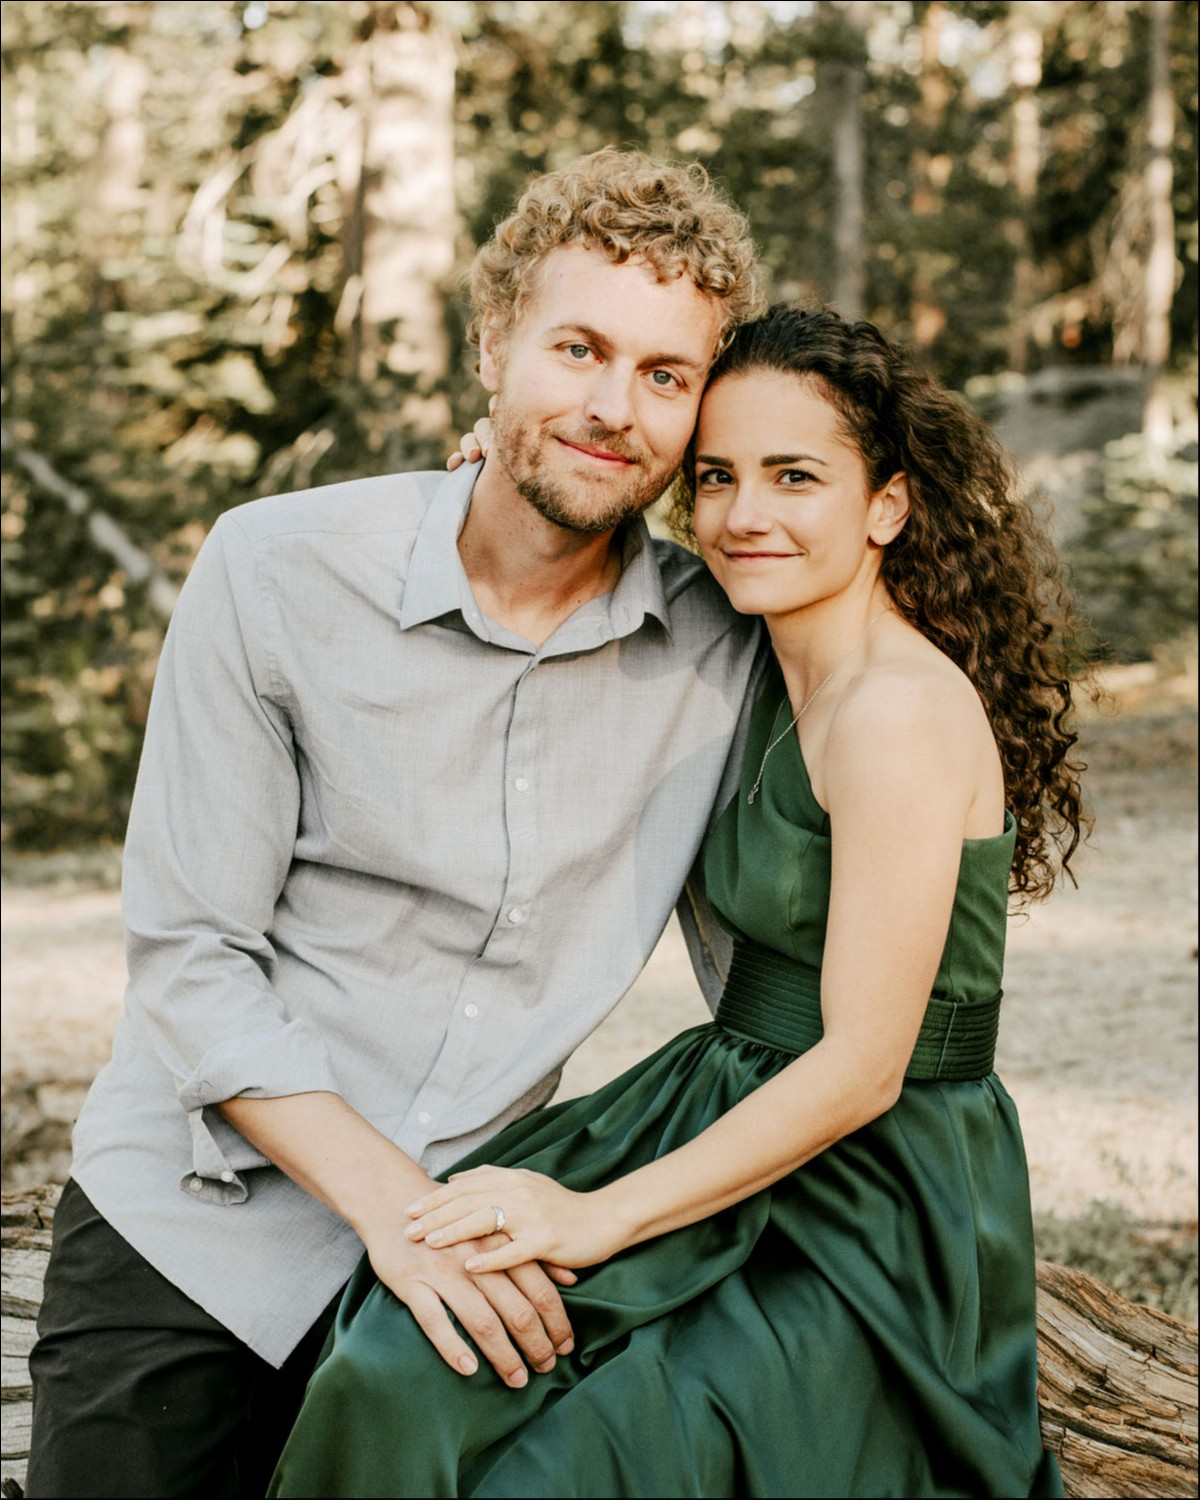 10 Questions with Stephan & Adriana Krause